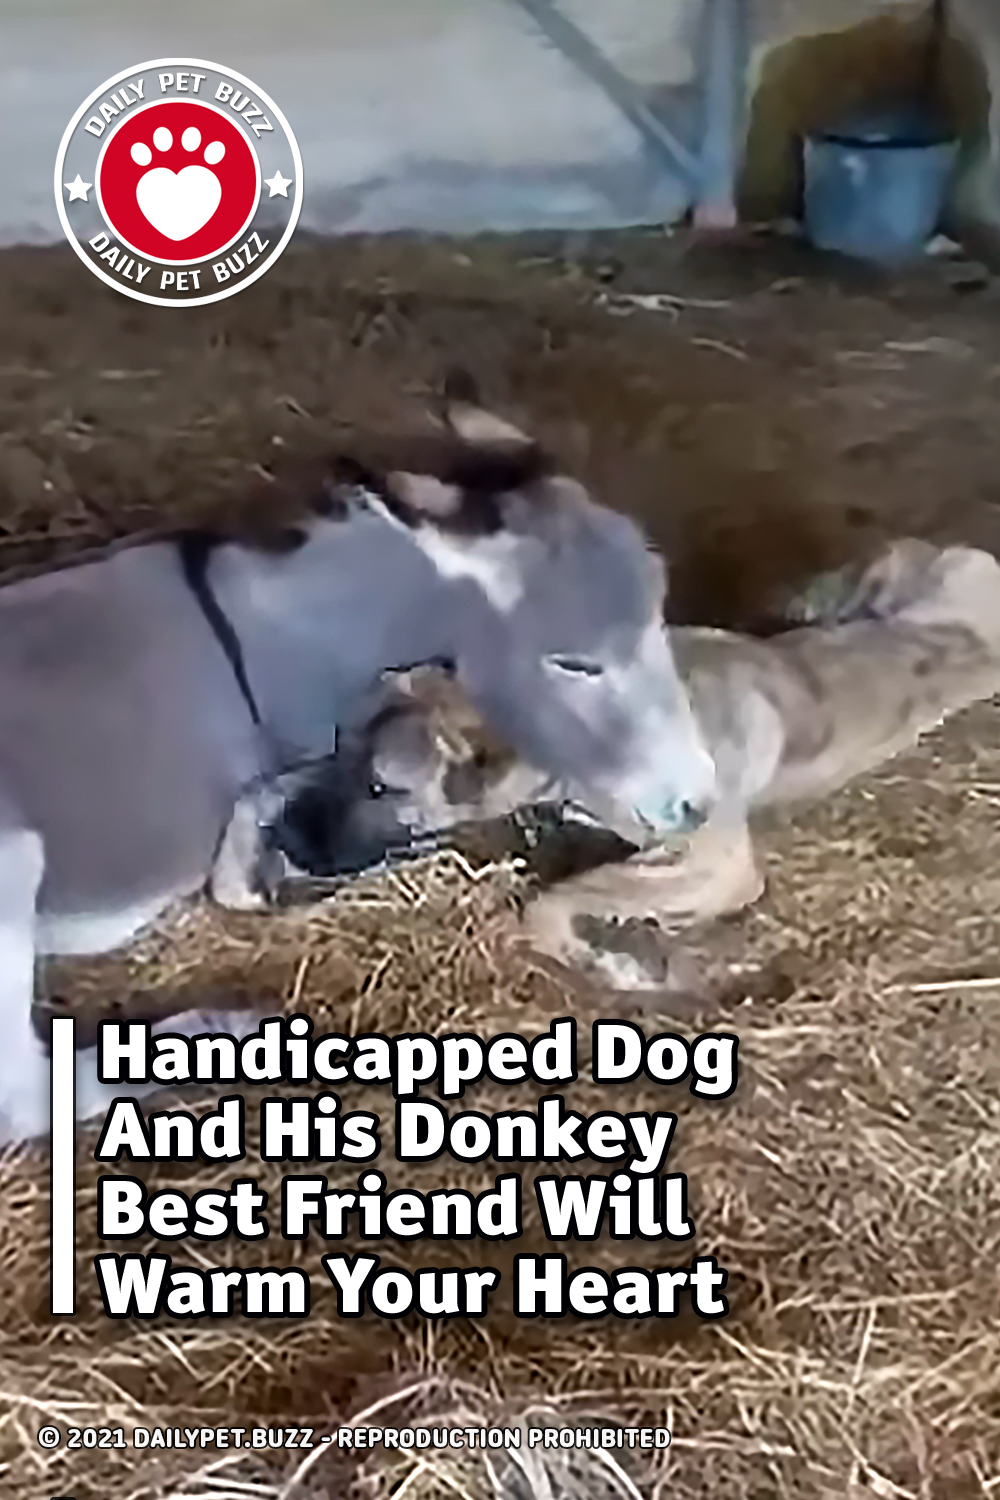 Handicapped Dog And His Donkey Best Friend Will Warm Your Heart